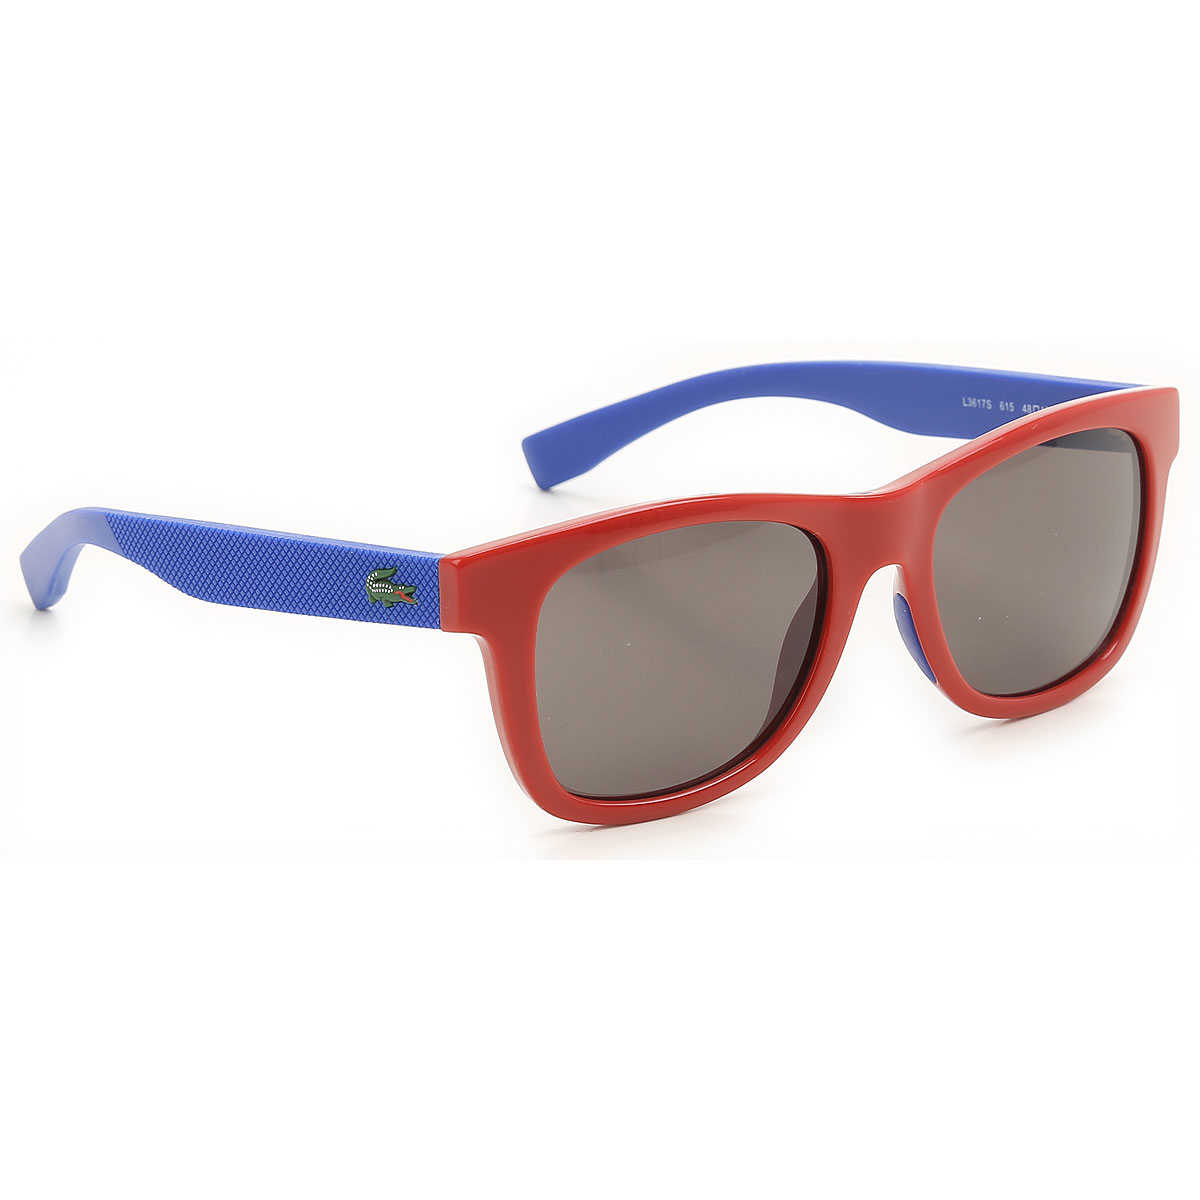 Lacoste Kids Sunglasses for Boys On Sale Red SE - GOOFASH